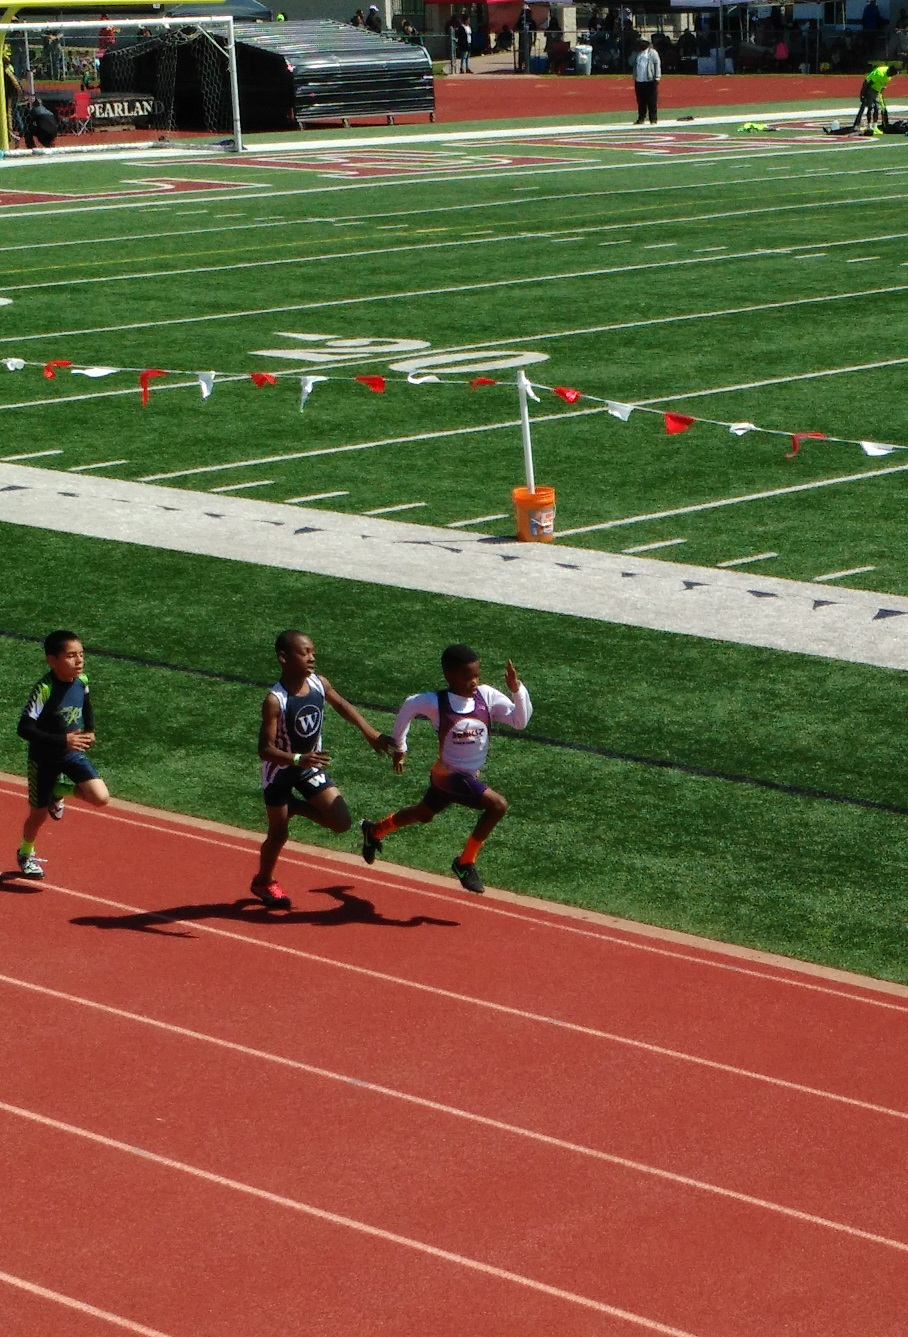 Cayden running the 800